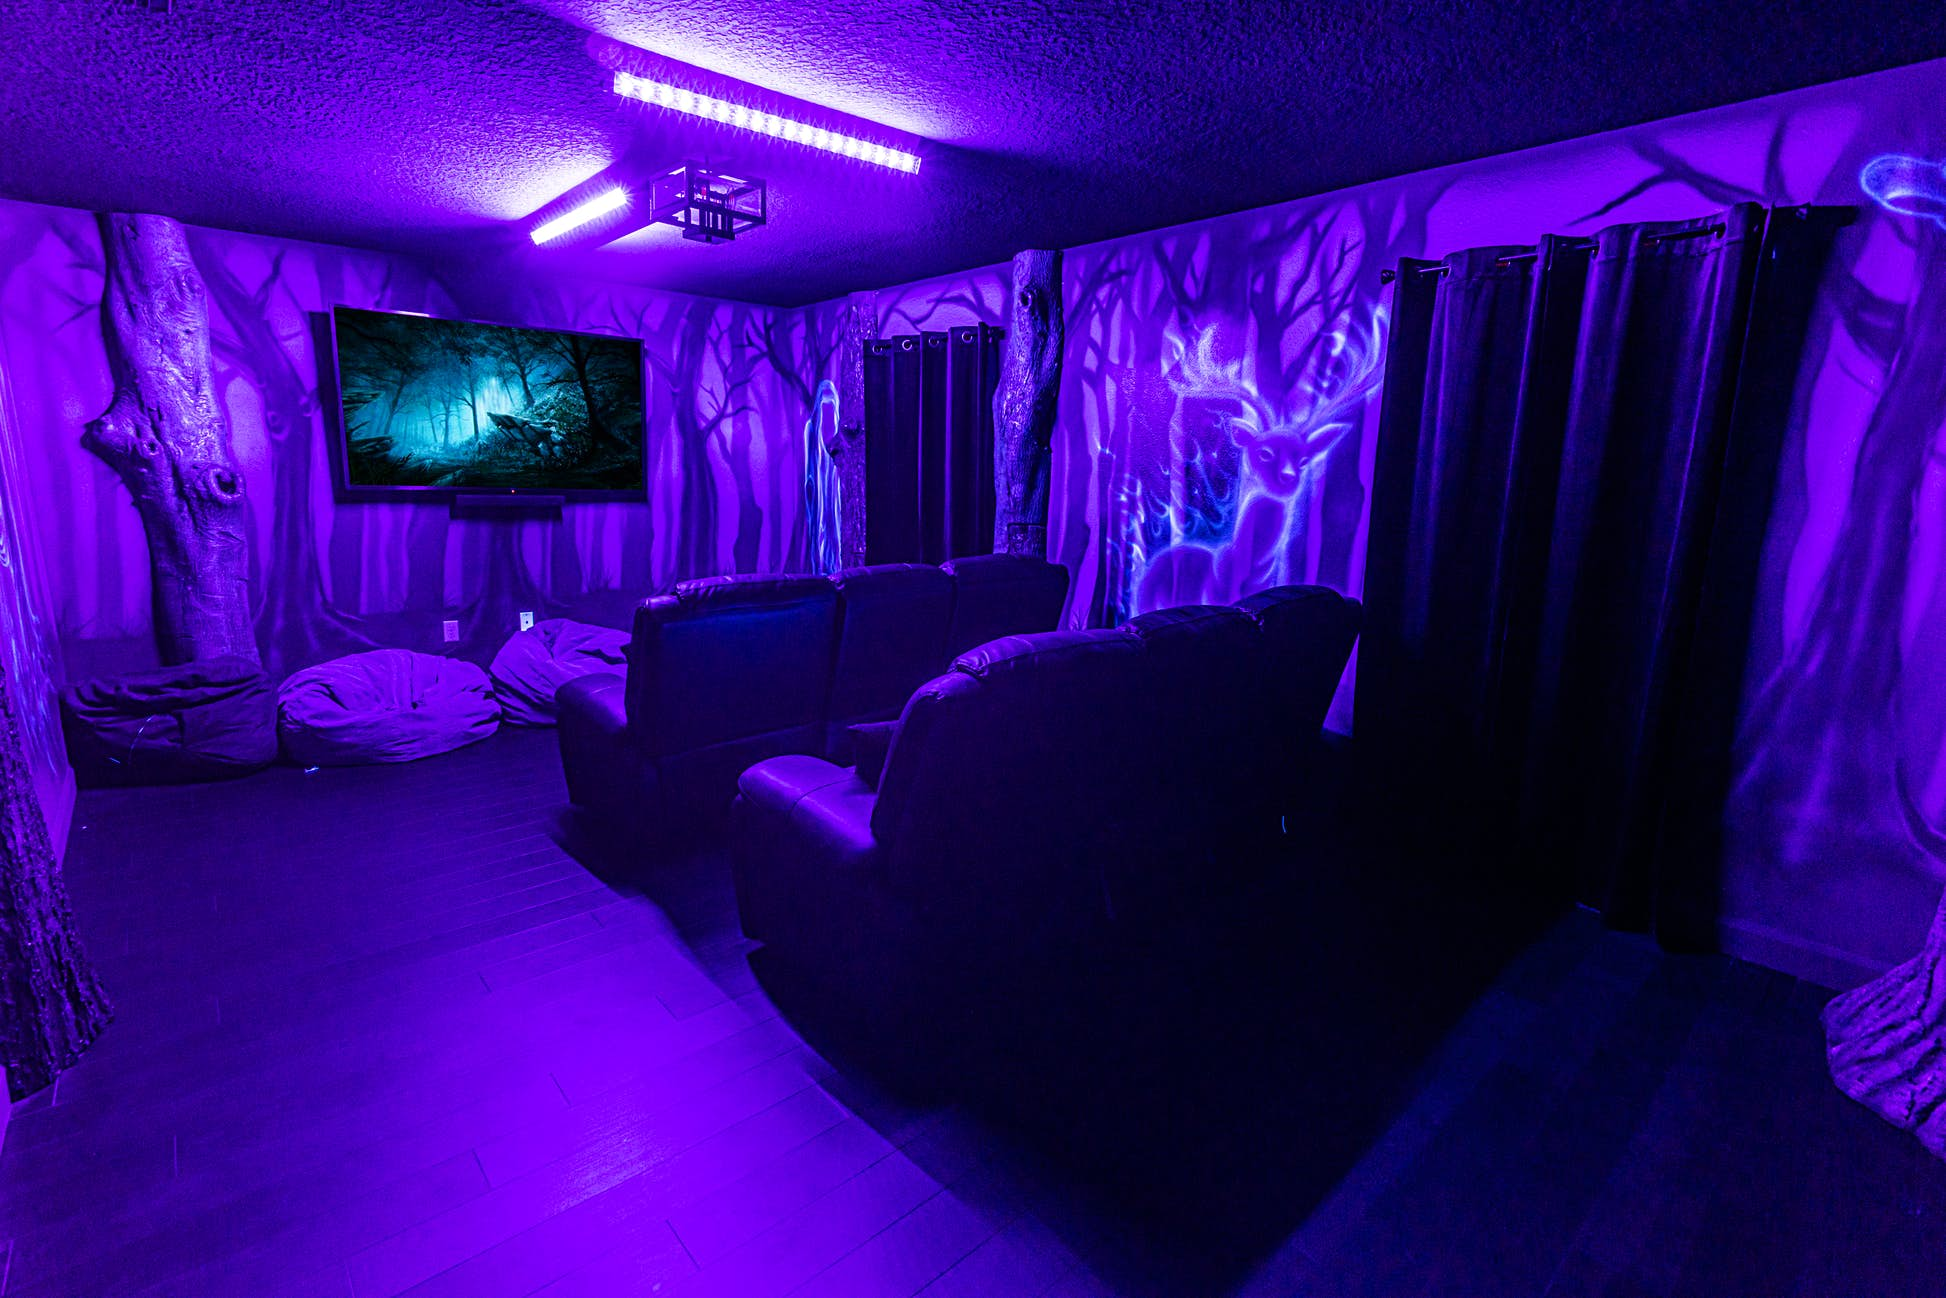 The theatre room comes complete with haunting dementors © Loma Homes